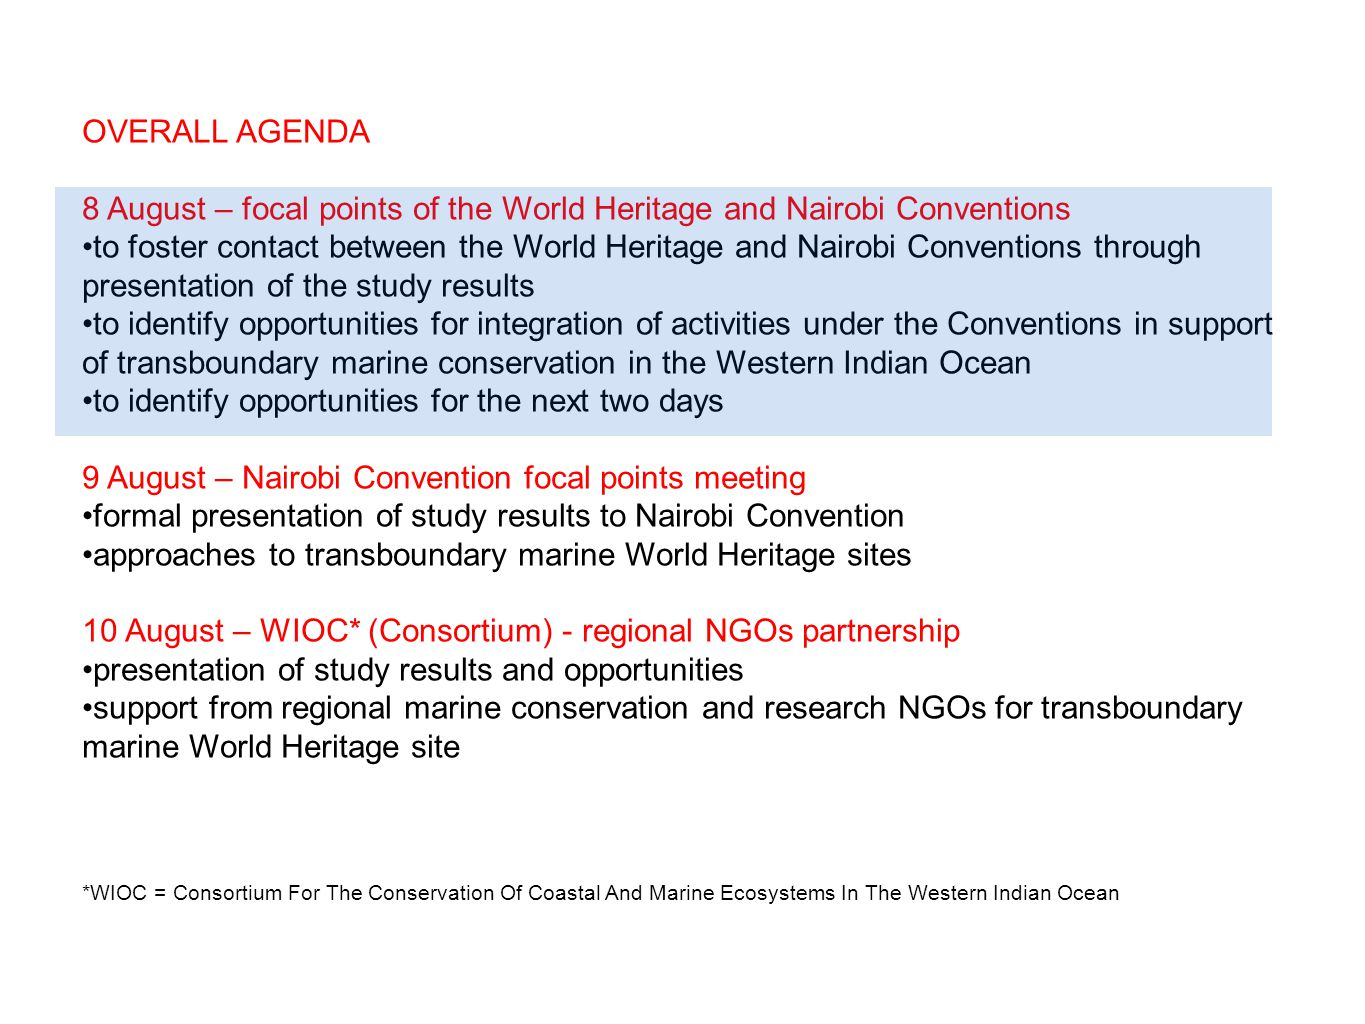 OVERALL AGENDA 8 August – focal points of the World Heritage and Nairobi Conventions to foster contact between the World Heritage and Nairobi Conventions through presentation of the study results to identify opportunities for integration of activities under the Conventions in support of transboundary marine conservation in the Western Indian Ocean to identify opportunities for the next two days 9 August – Nairobi Convention focal points meeting formal presentation of study results to Nairobi Convention approaches to transboundary marine World Heritage sites 10 August – WIOC* (Consortium) - regional NGOs partnership presentation of study results and opportunities support from regional marine conservation and research NGOs for transboundary marine World Heritage site *WIOC = Consortium For The Conservation Of Coastal And Marine Ecosystems In The Western Indian Ocean